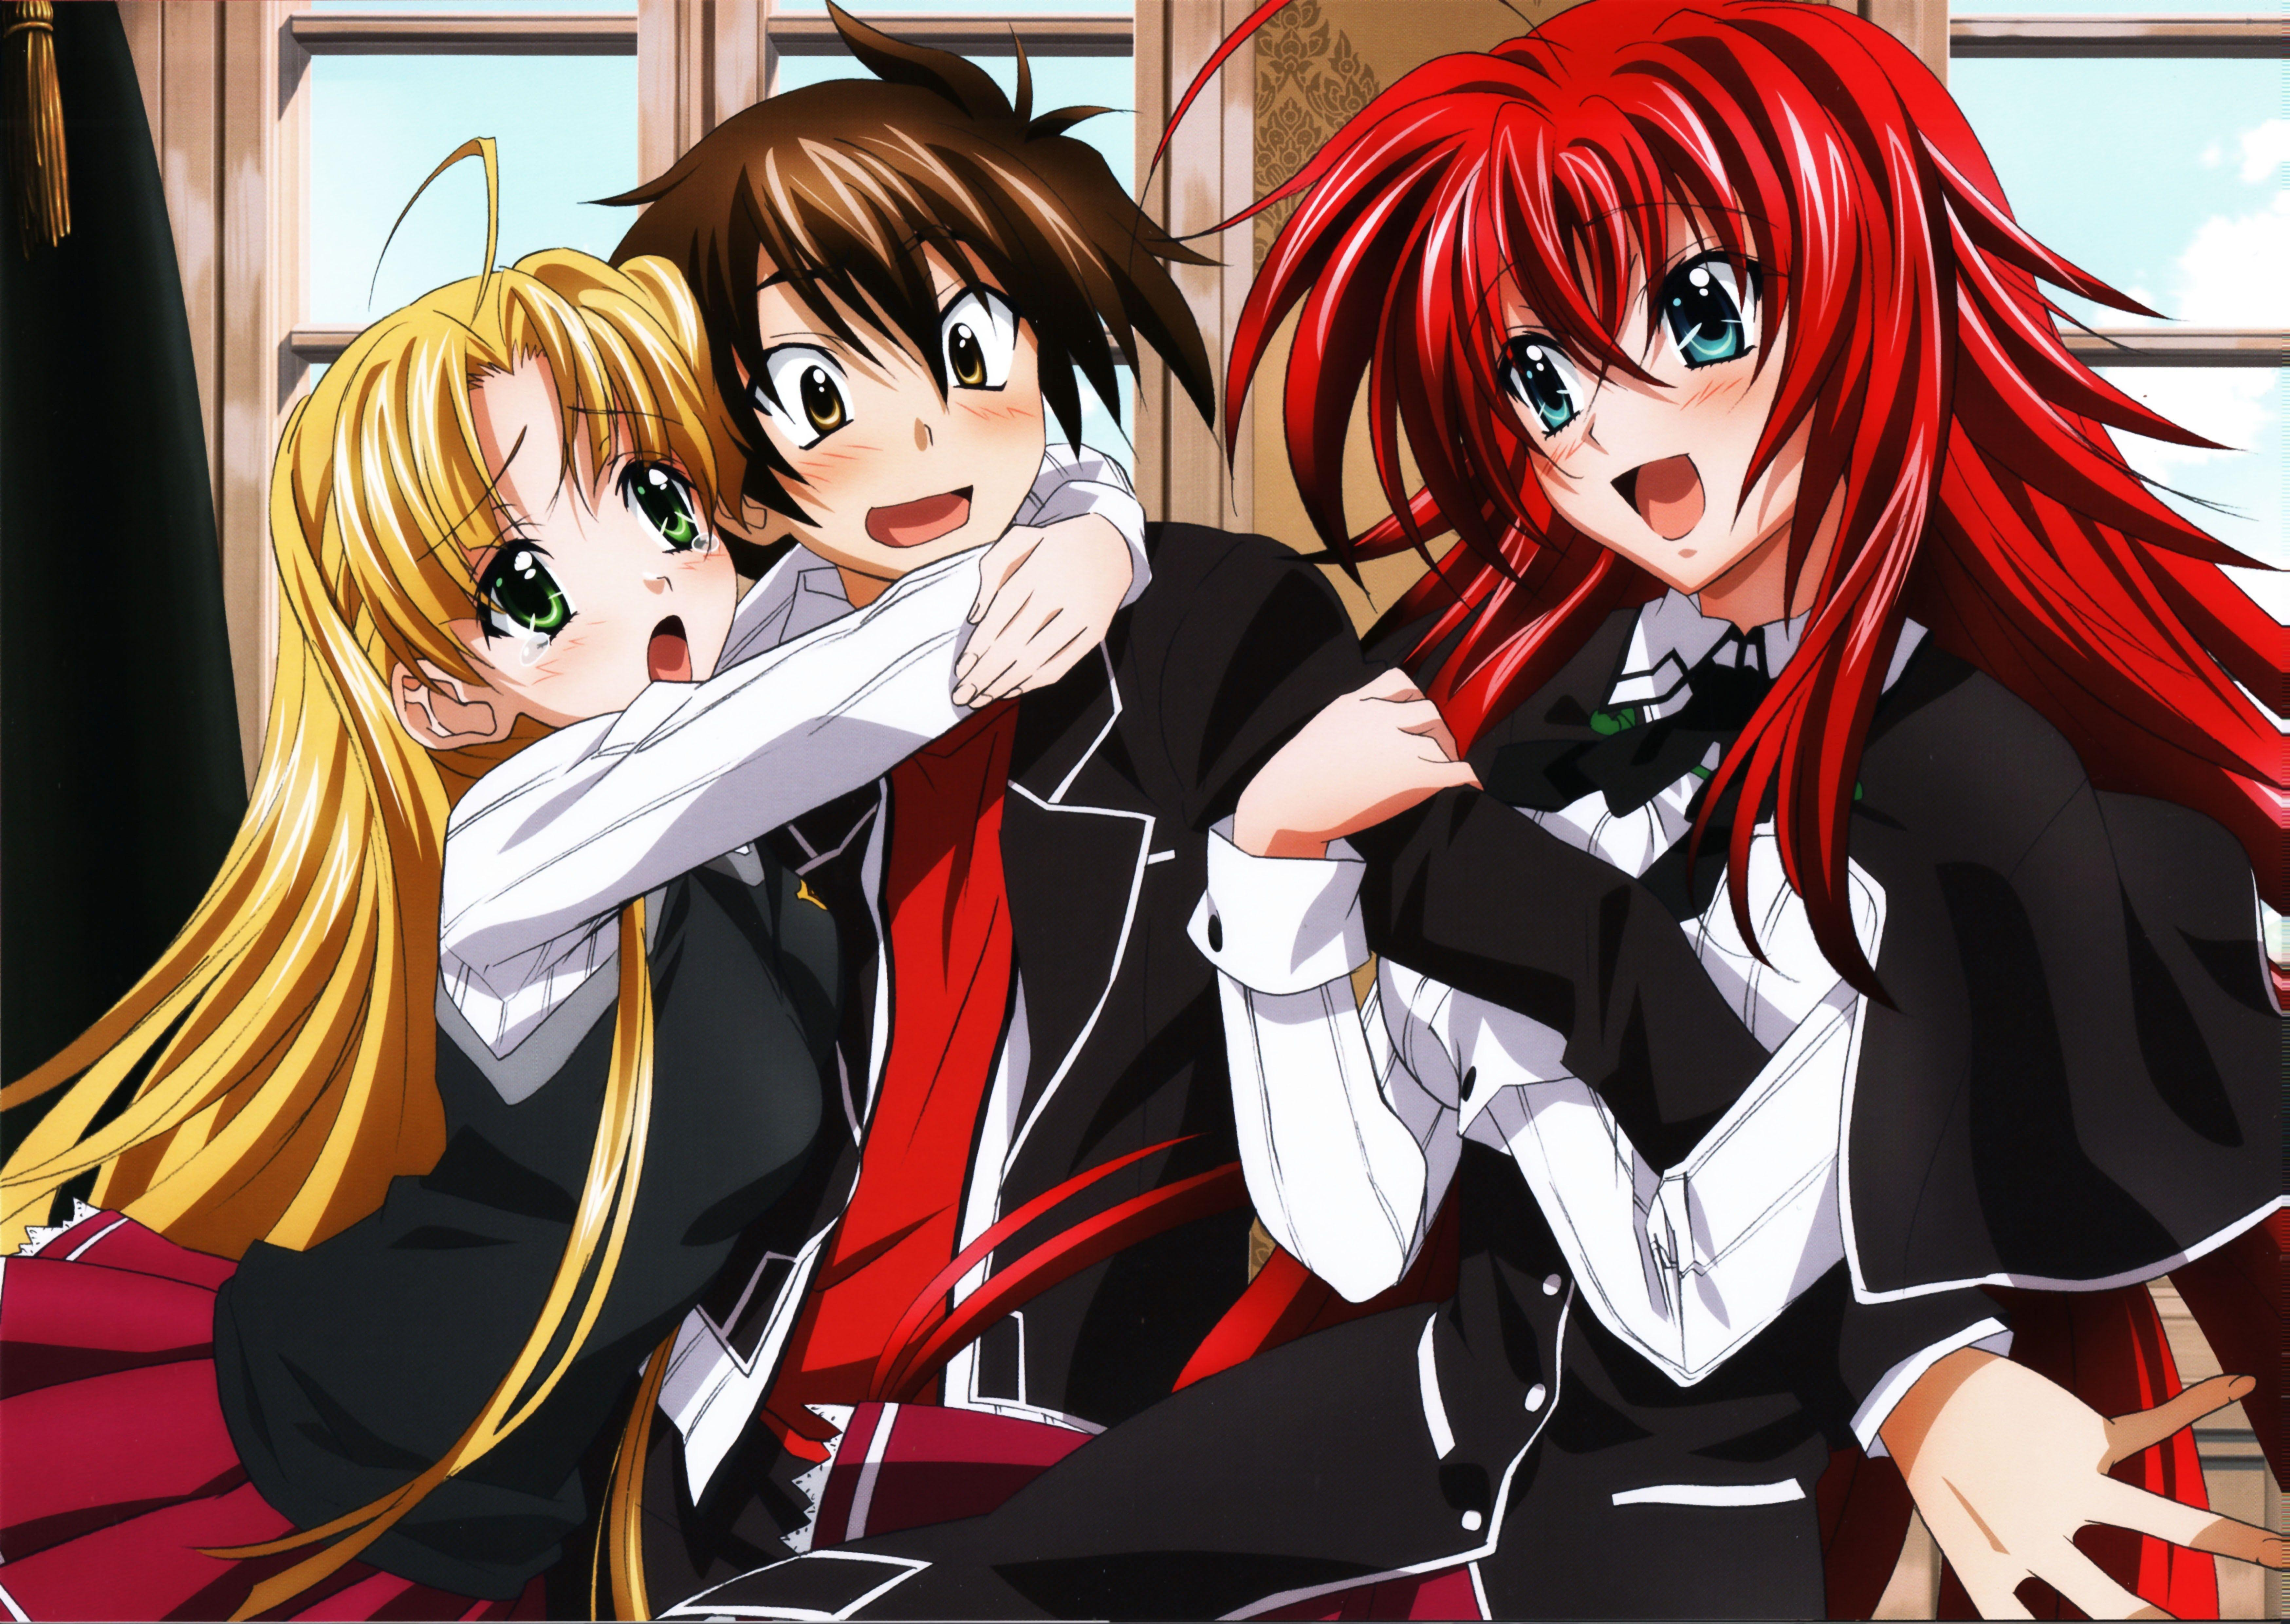 1610012, HQ Definition Wallpapers Desktop high school dxd image